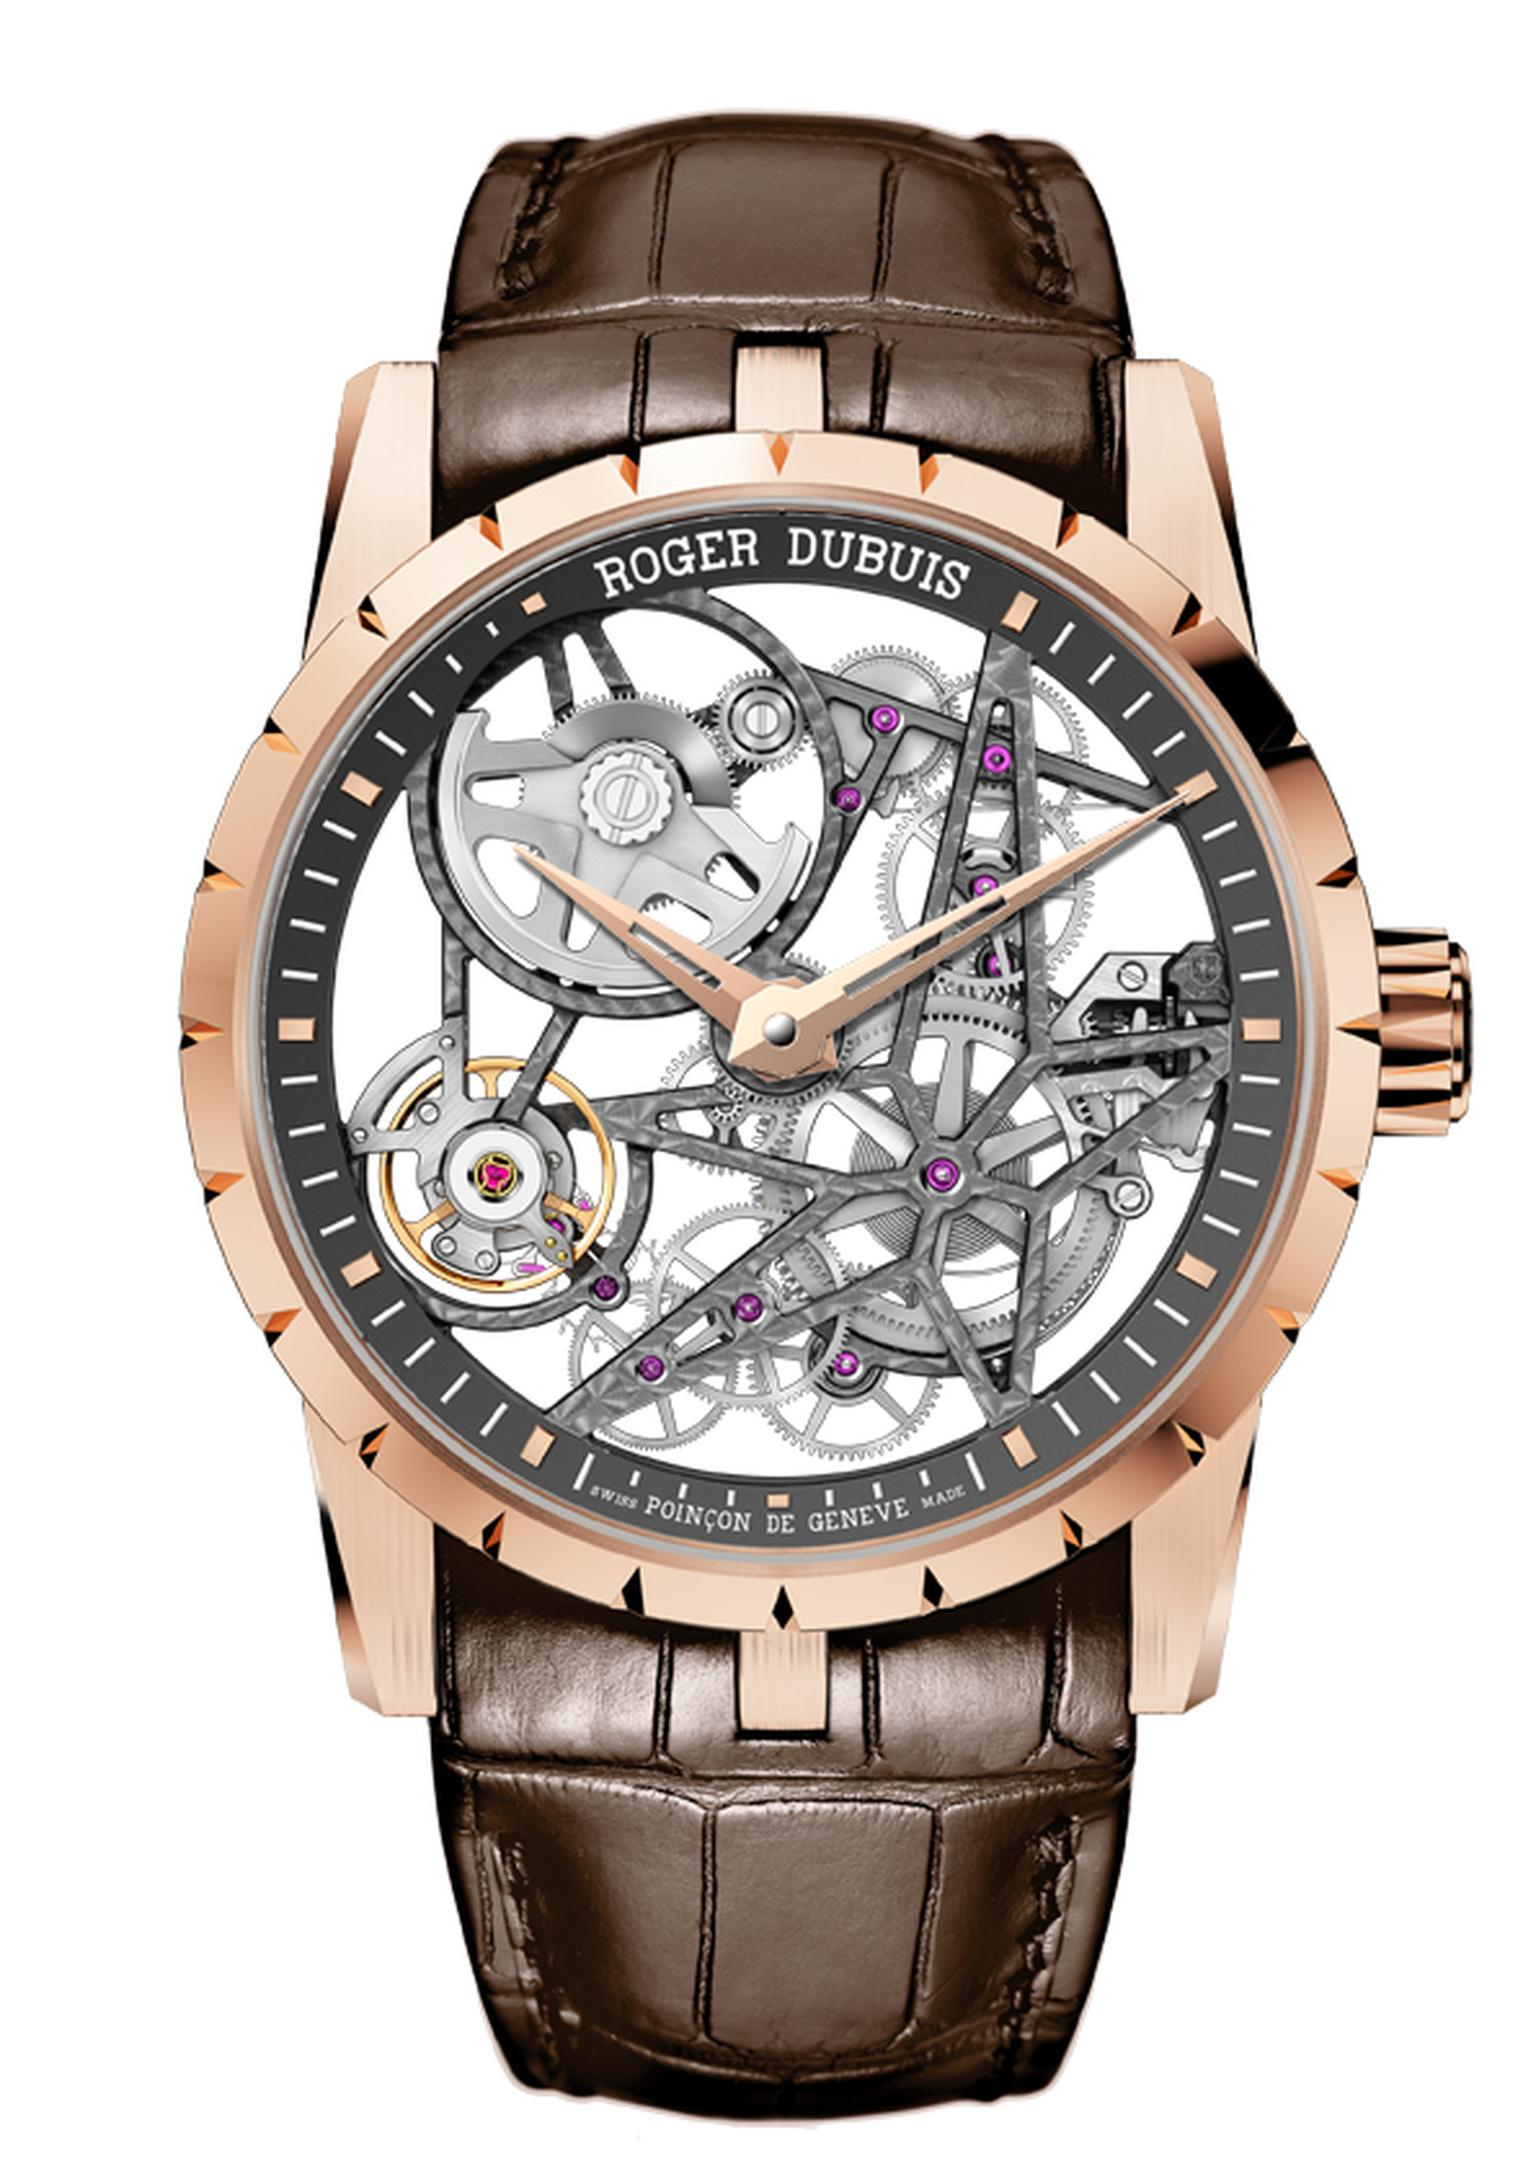 Roger Dubuis Excalibur Automatic Skeleton is a showcase for the brand's prestigious finishes. Housed in a 42mm rose gold case, all faces of the 167 parts which make up the new calibre have been individually finished.